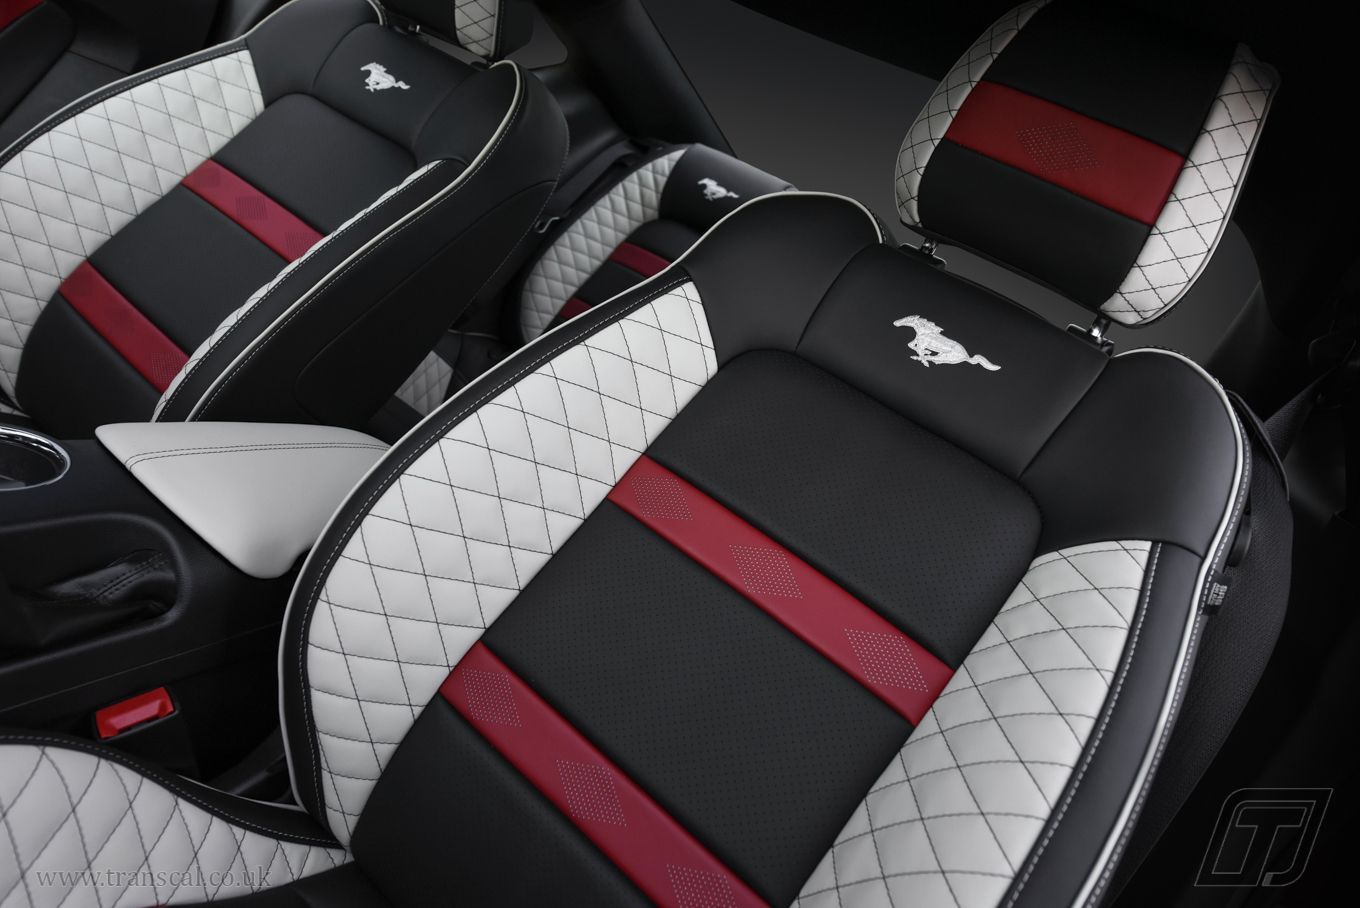 Ford Mustang Bespoke Leather Interior Upholsteryheadboard Leather Car Seat Covers Car Interior Upholstery Car Interior